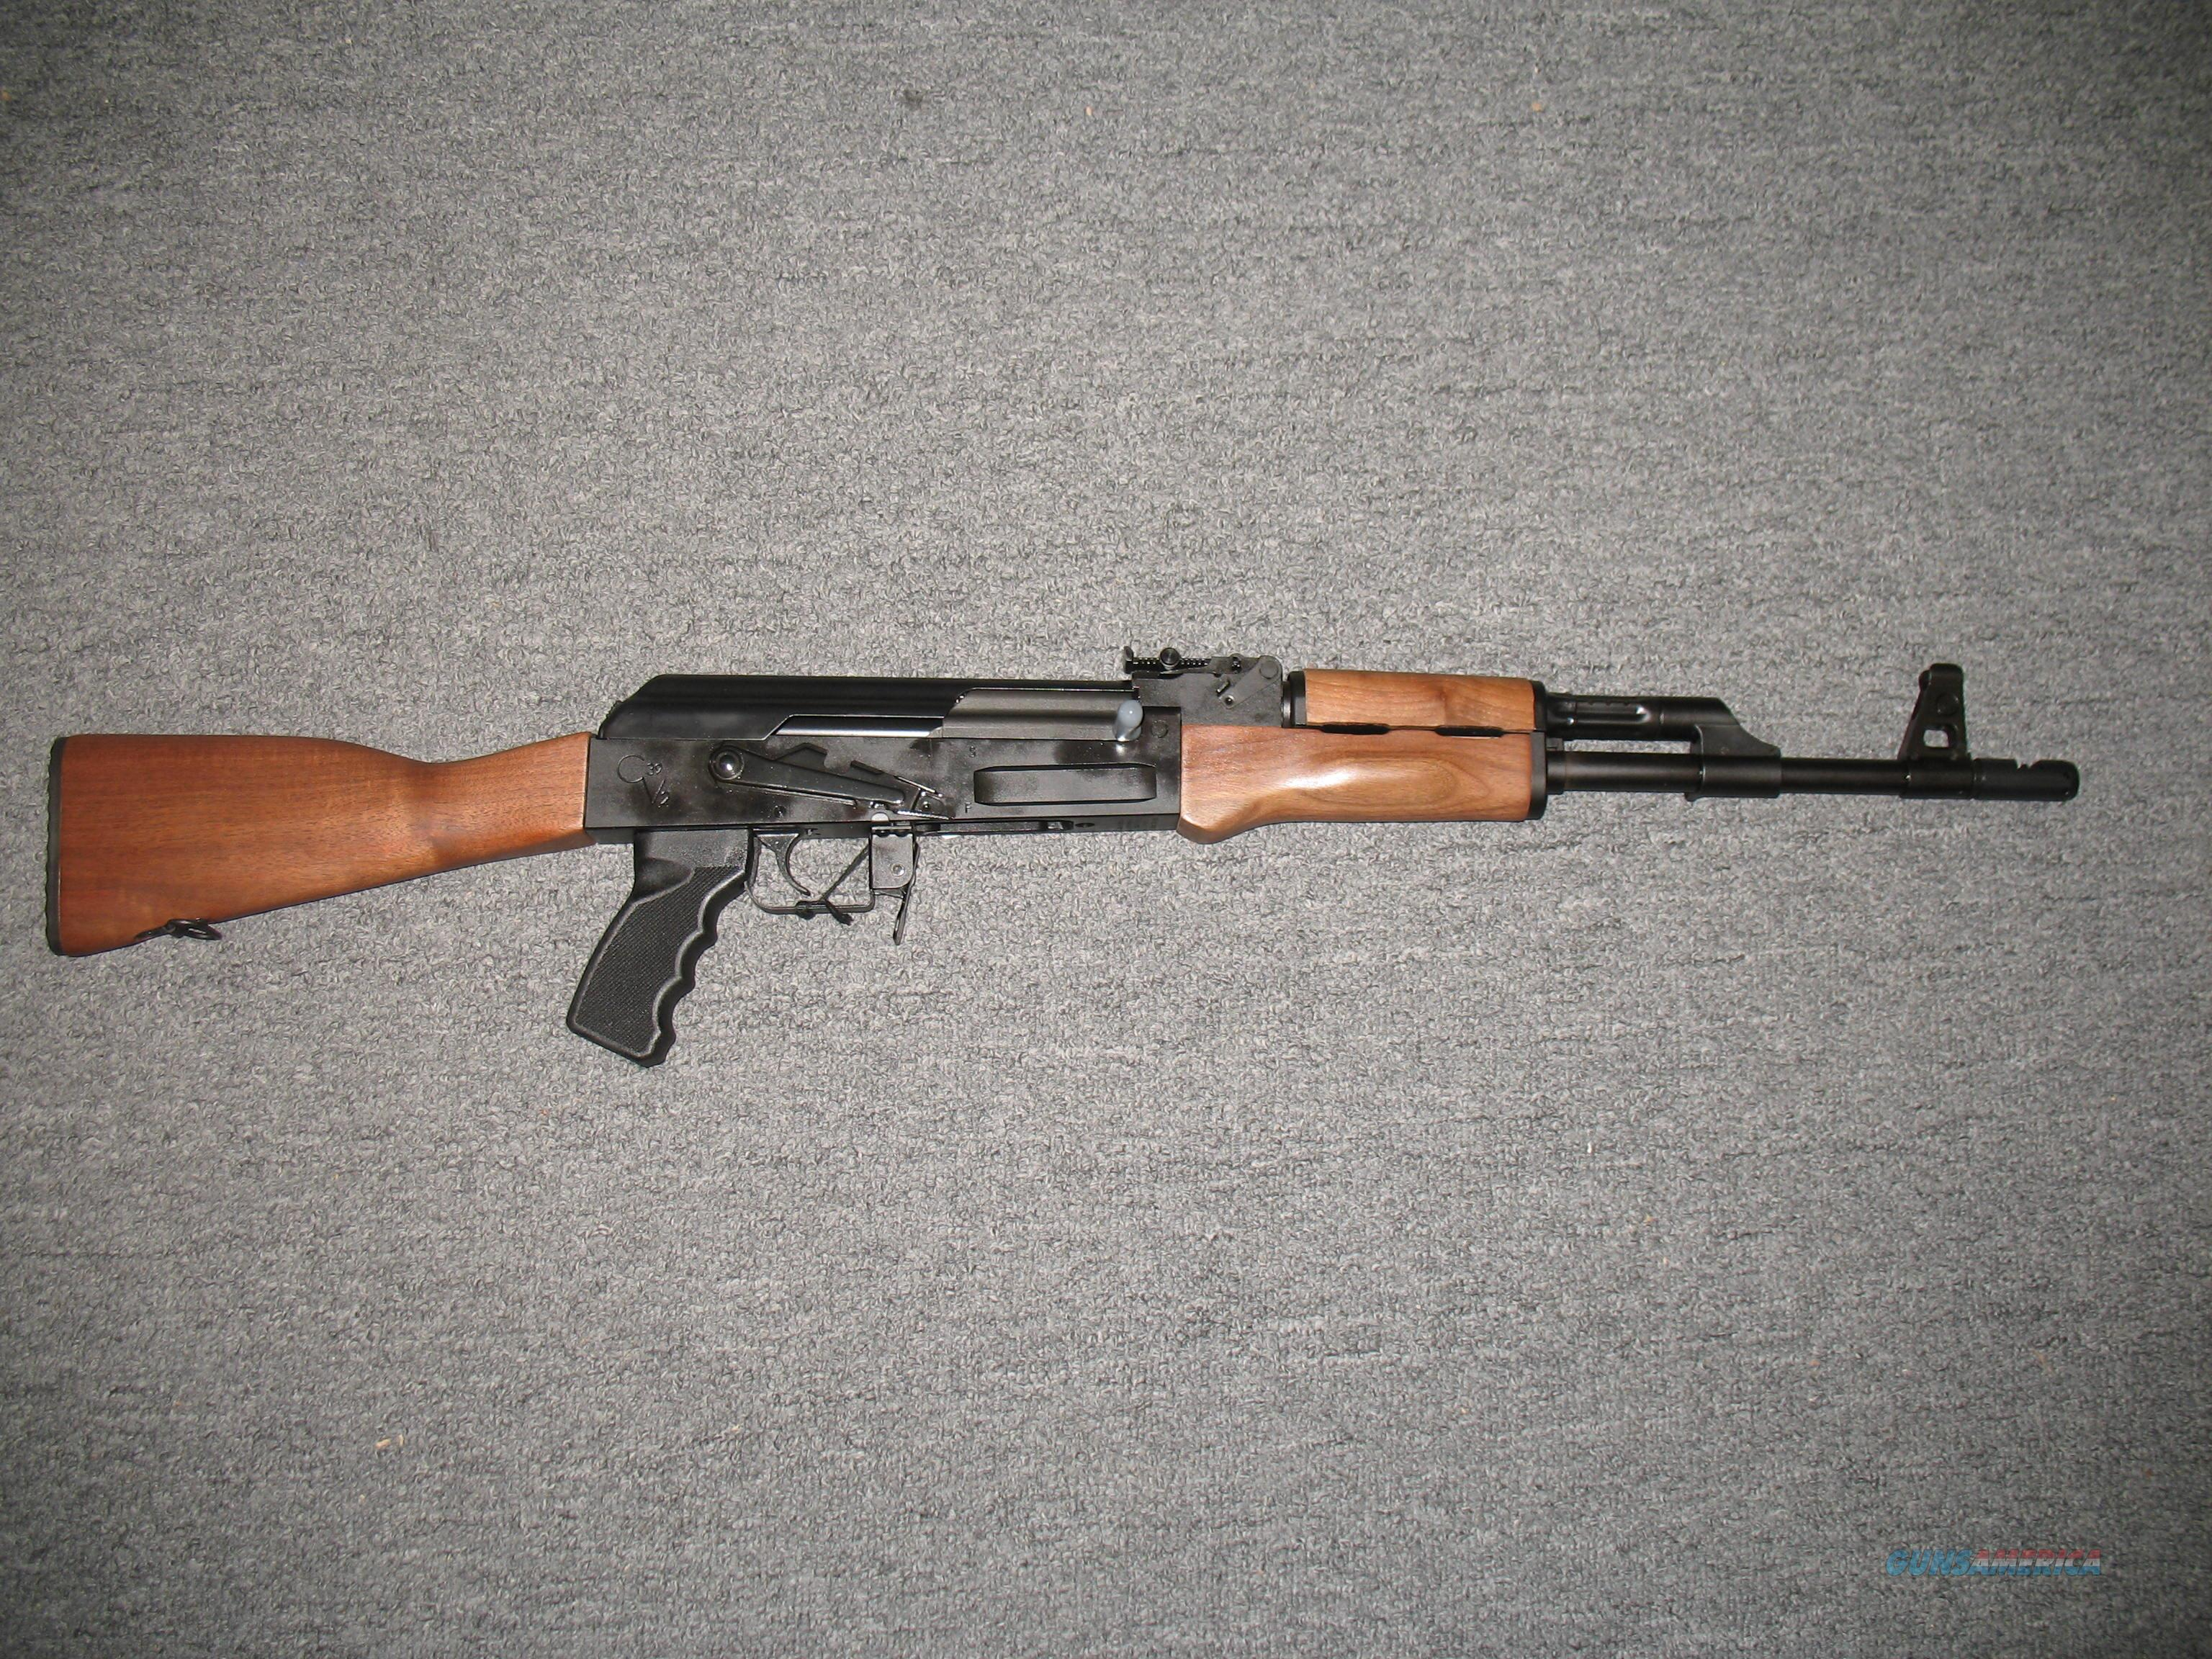 C39 V2 Rifle (Milled Receiver, with wood furniture)  Guns > Rifles > Century International Arms - Rifles > Rifles